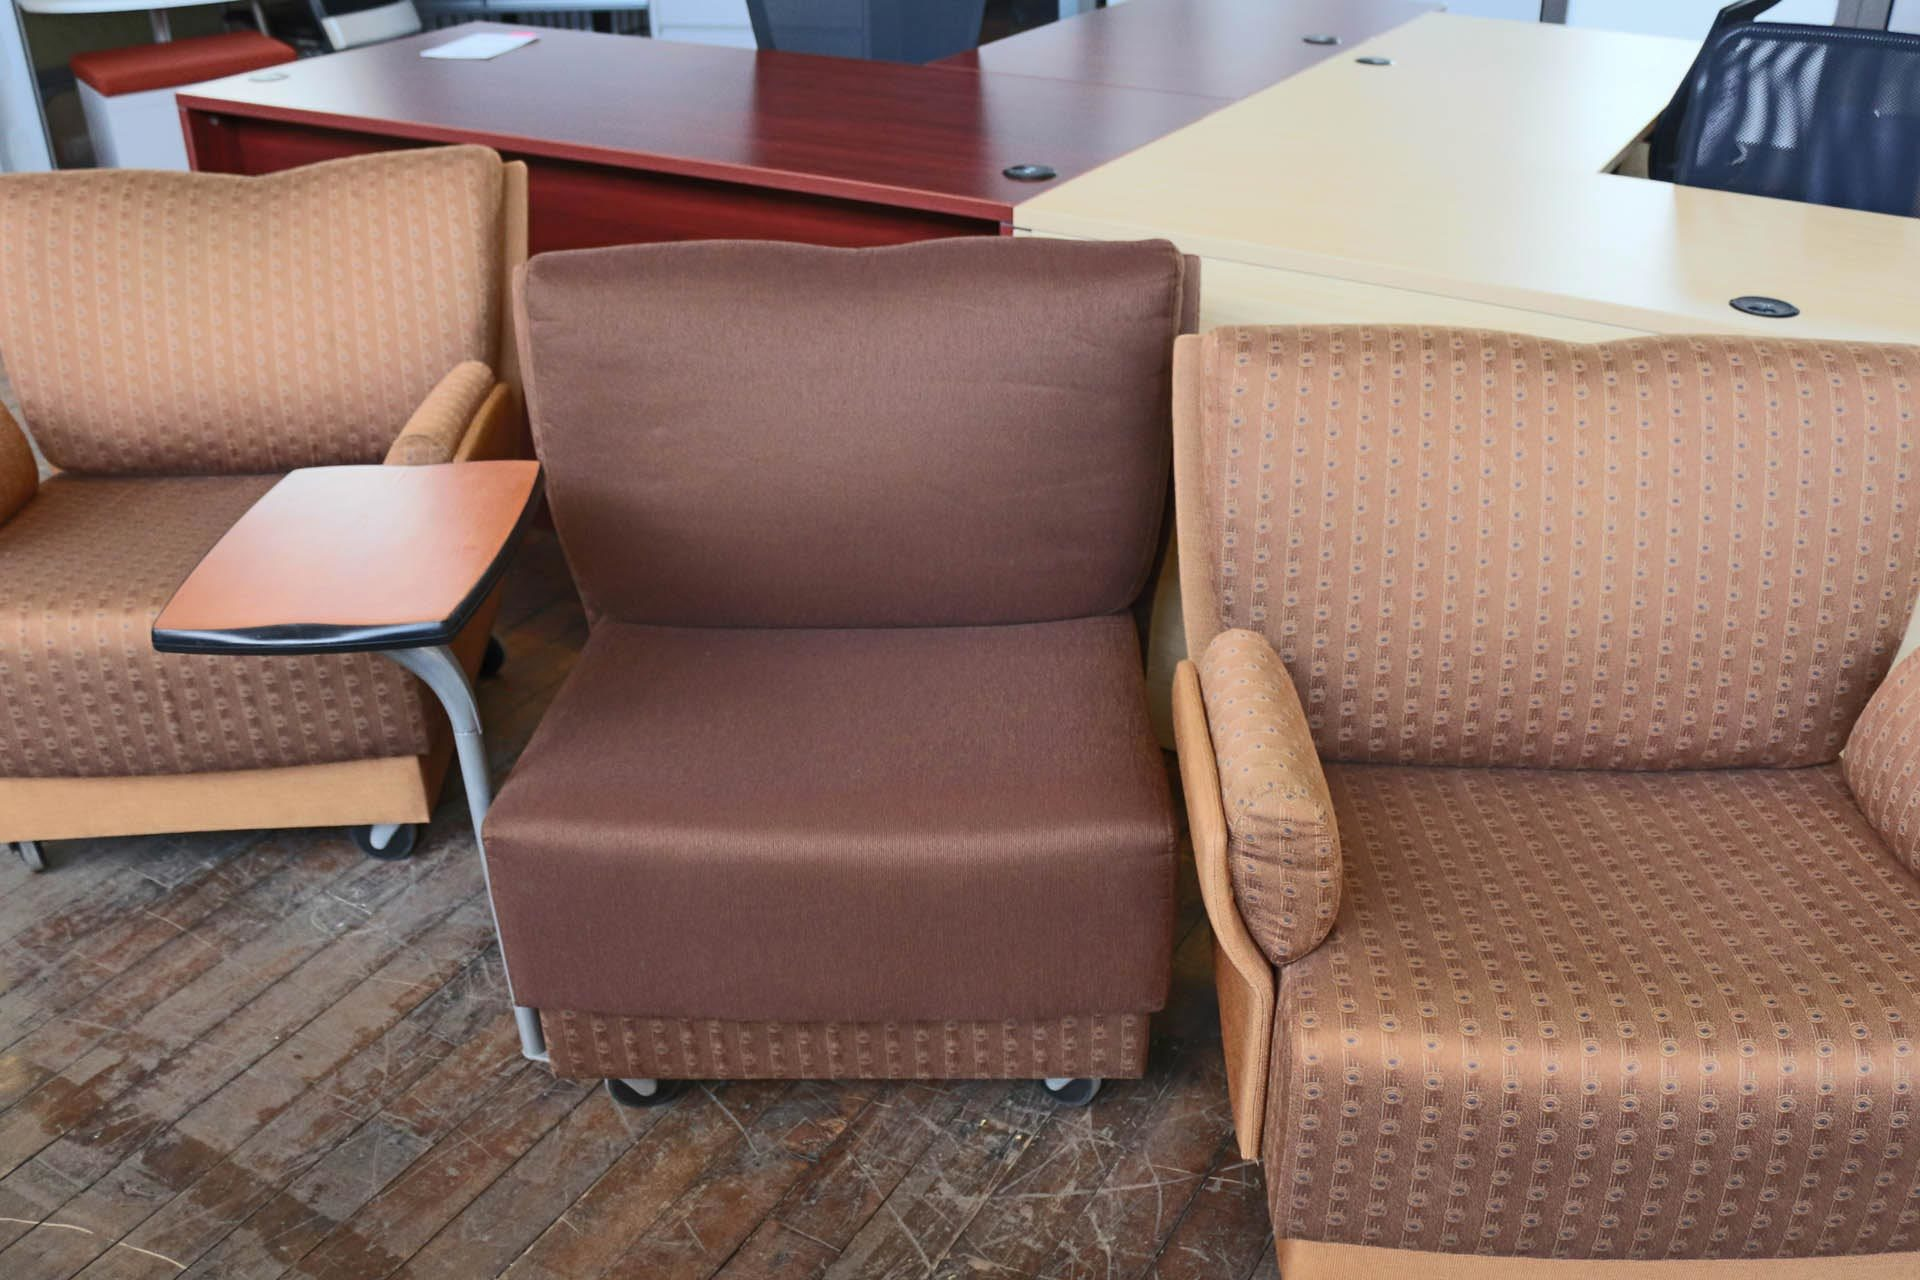 Metro Mobile Lounge Chairs